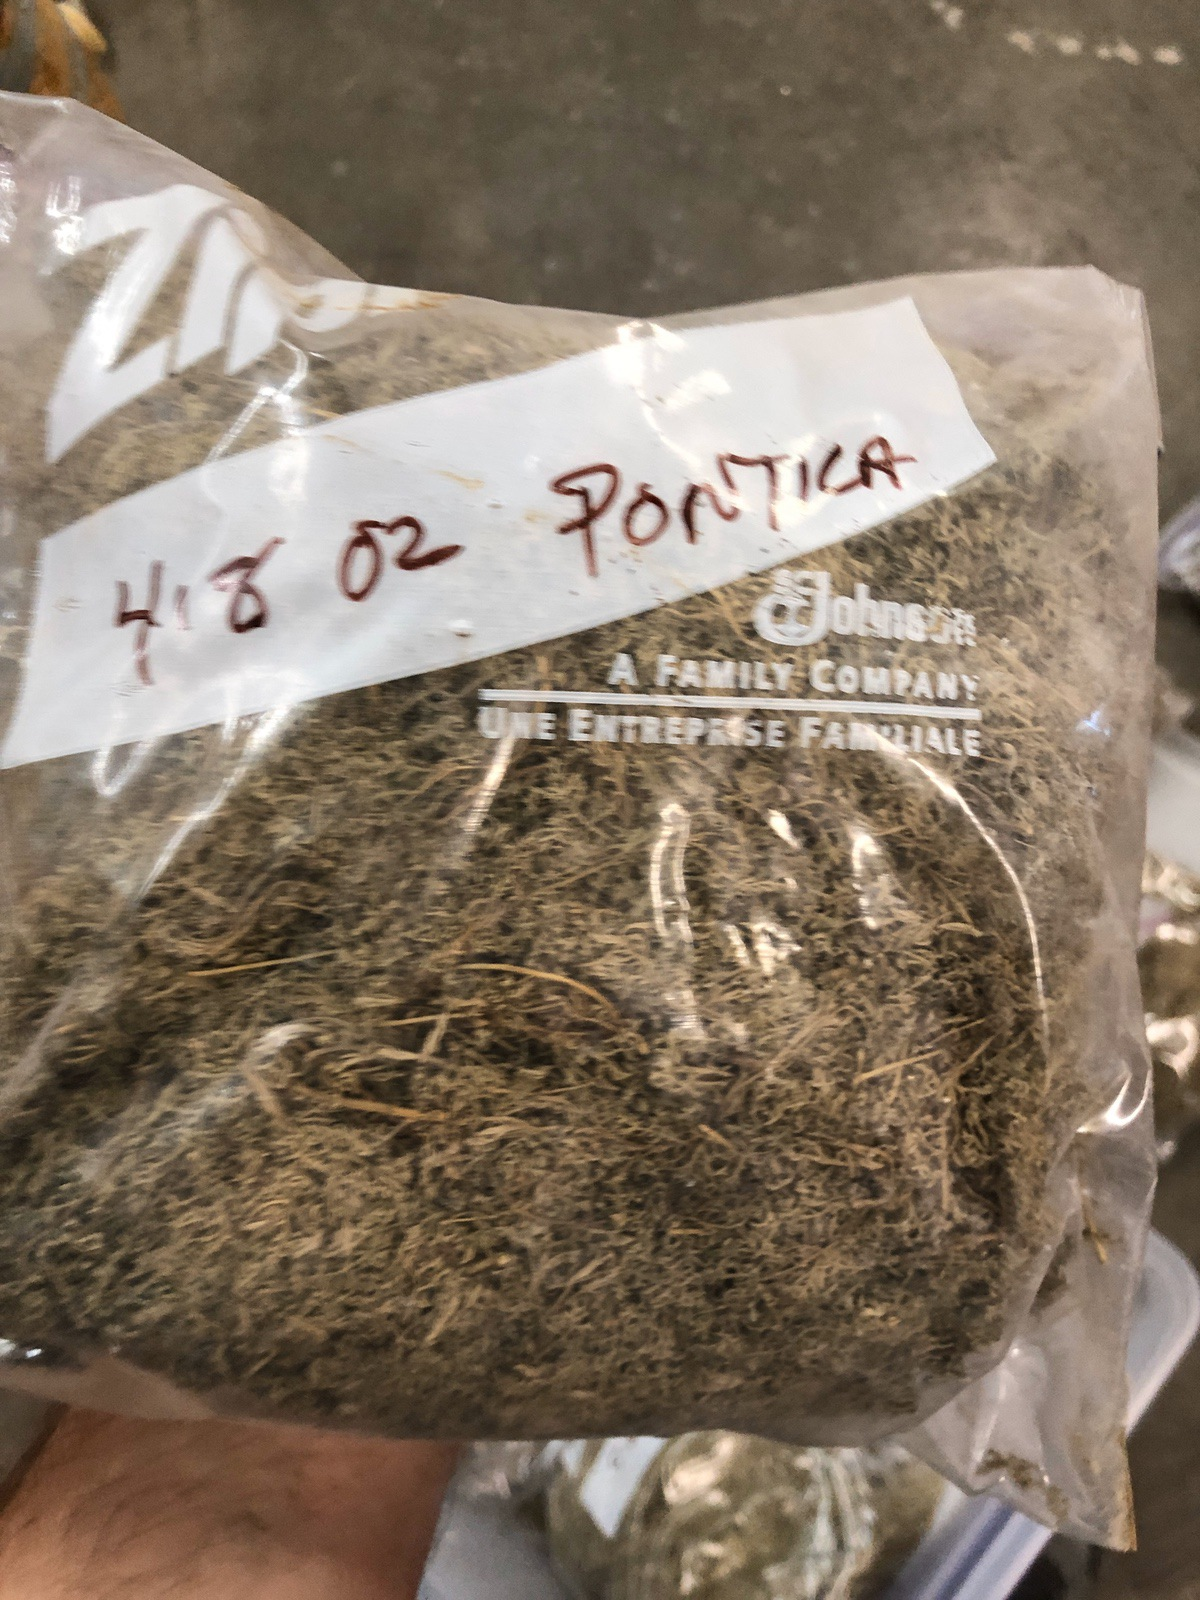 Lot of Herbs and Botanicals: Ponitica, Wormwood Herb C/S (Weight to be Provided | Rig Fee: $20 or HC - Image 11 of 14